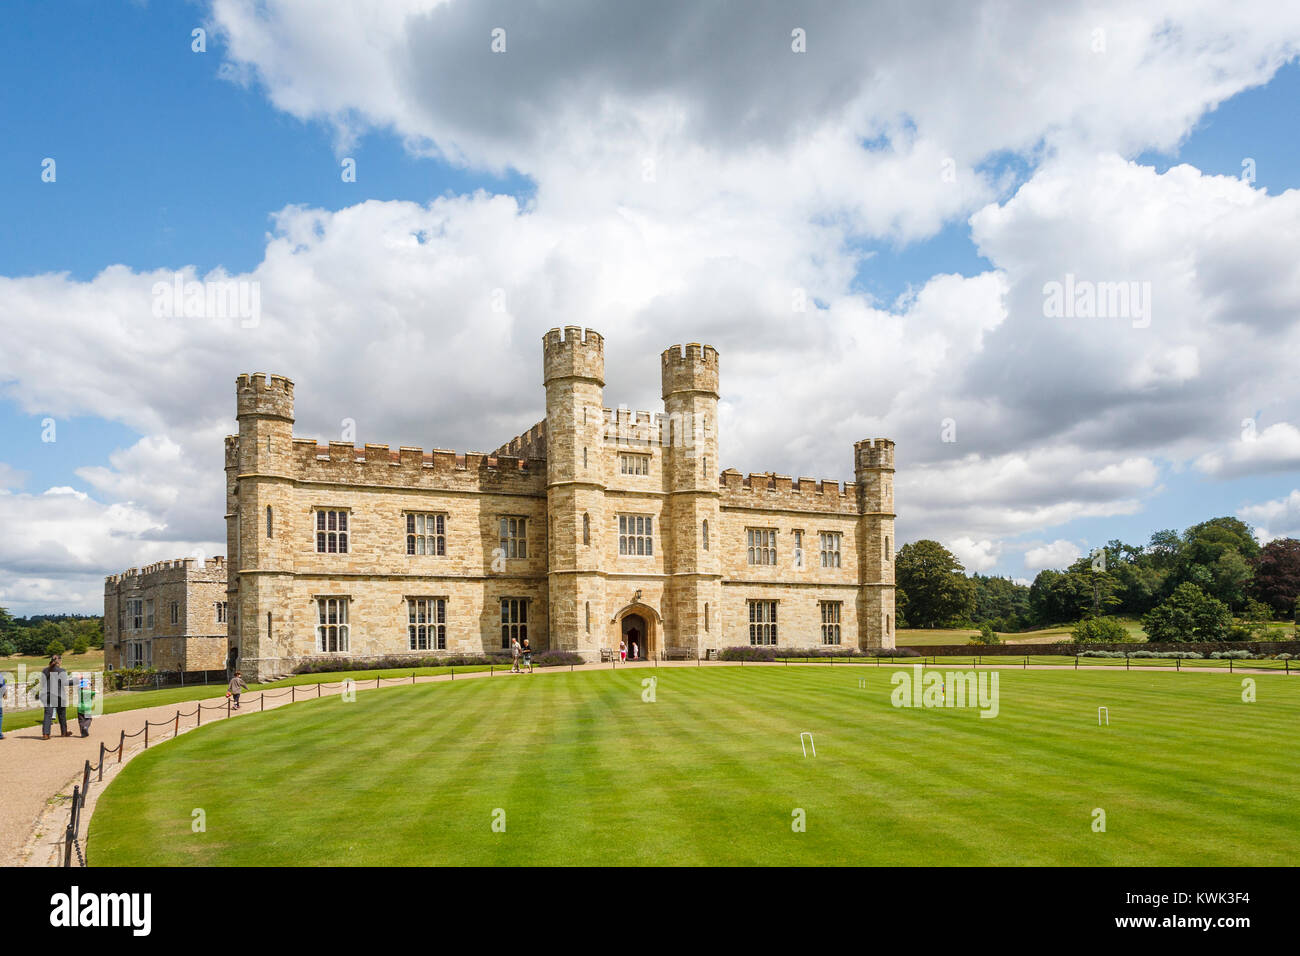 Main entrance facade to Leeds Castle, near Maidstone, Kent, southeast England, UK and croquet lawn on a sunny day - Stock Image